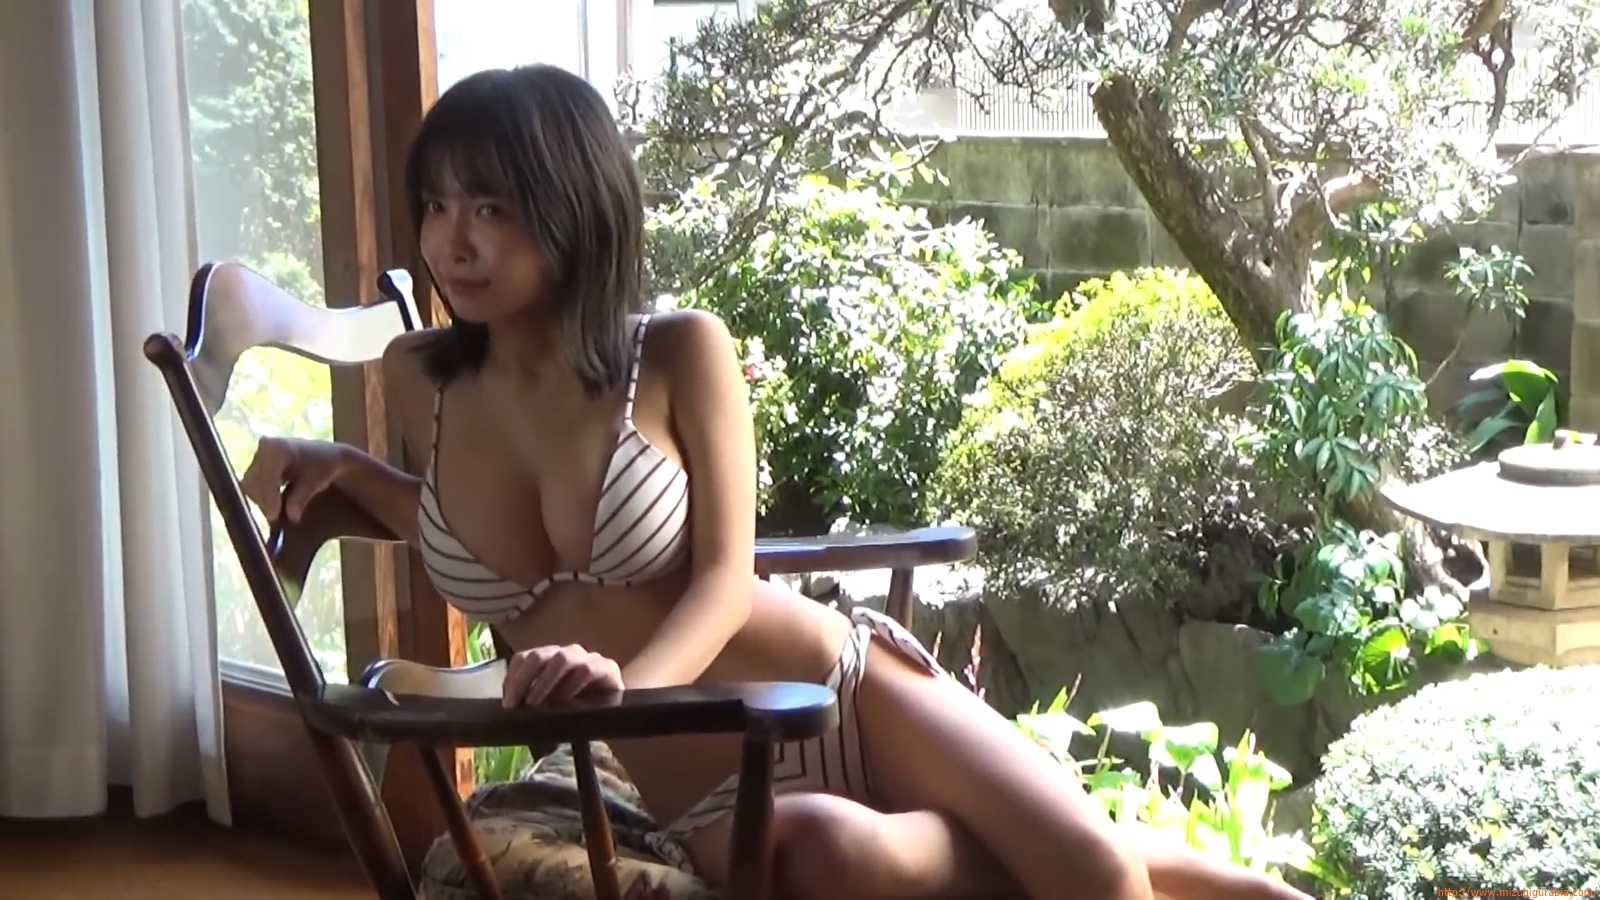 The gravure that makes all Japan cheer up Rio Teramoto 011